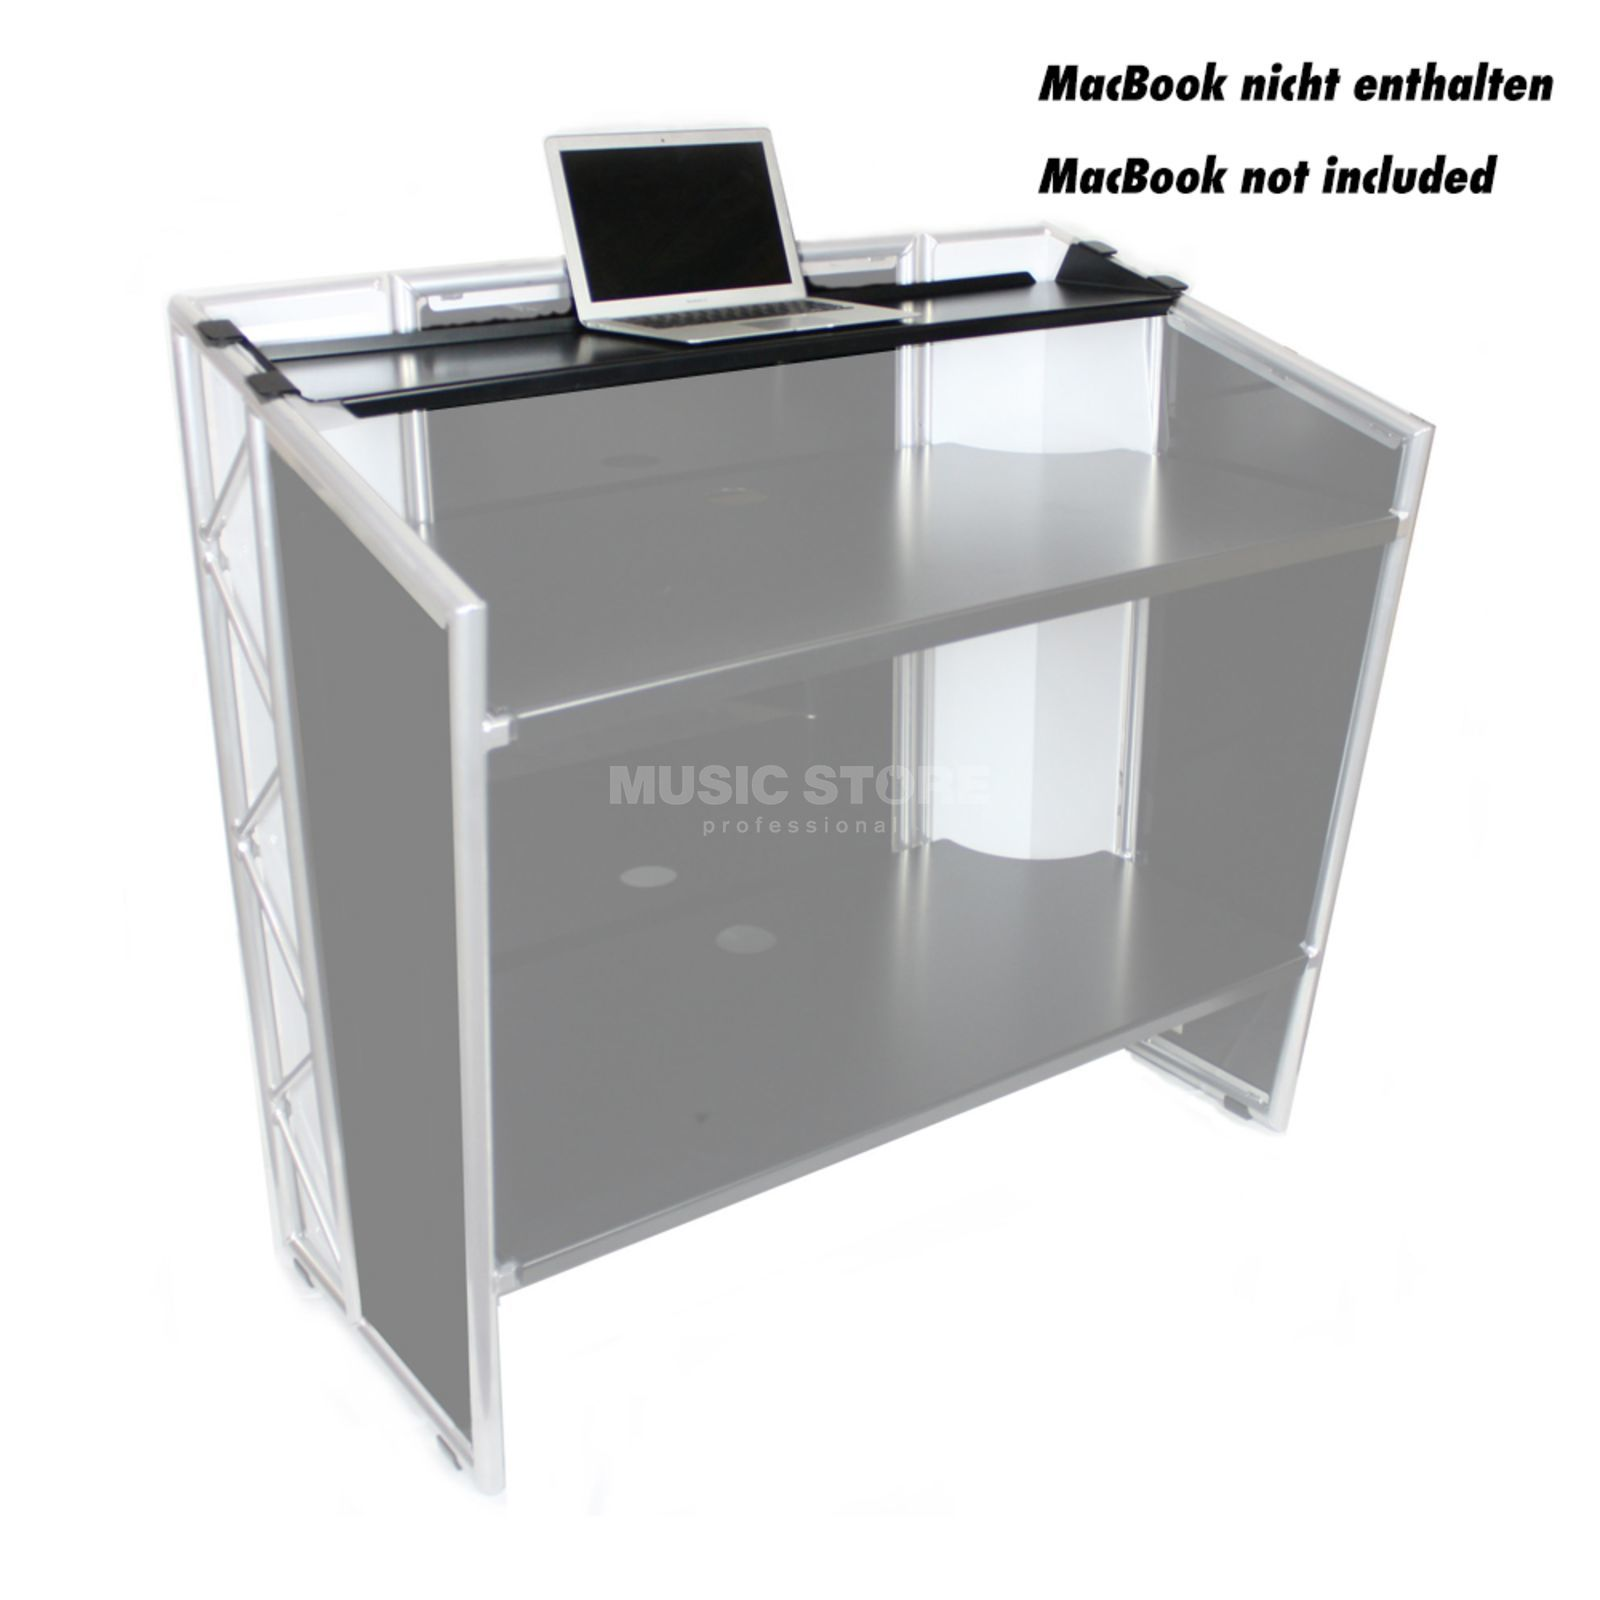 LiteConsole Elite Laptop Shelf Product Image